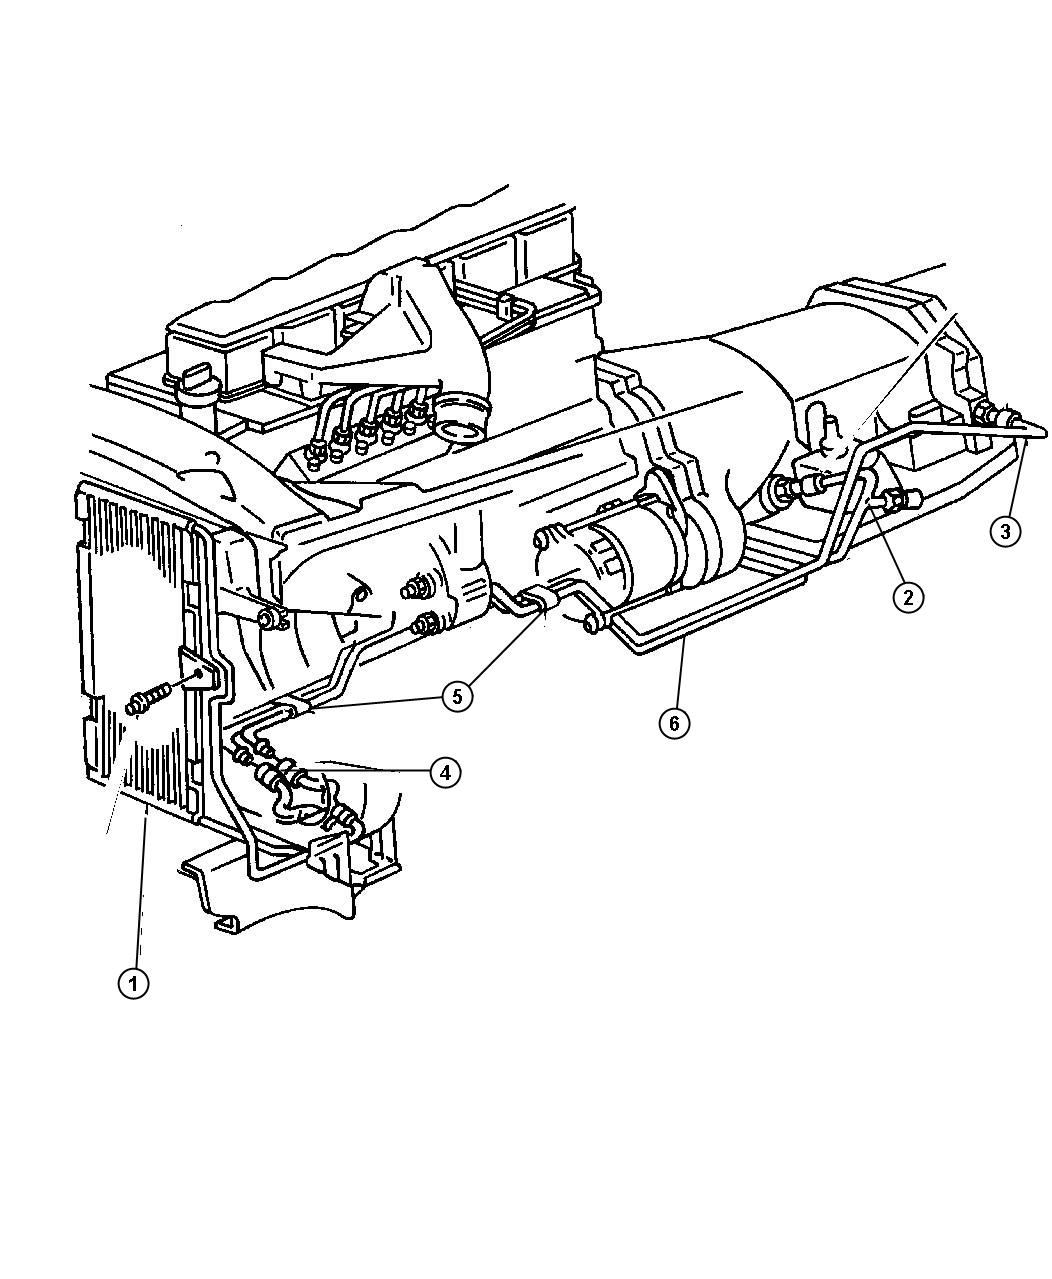 Wiring diagrams for 2005 dodge ram 1500 the wiring diagram